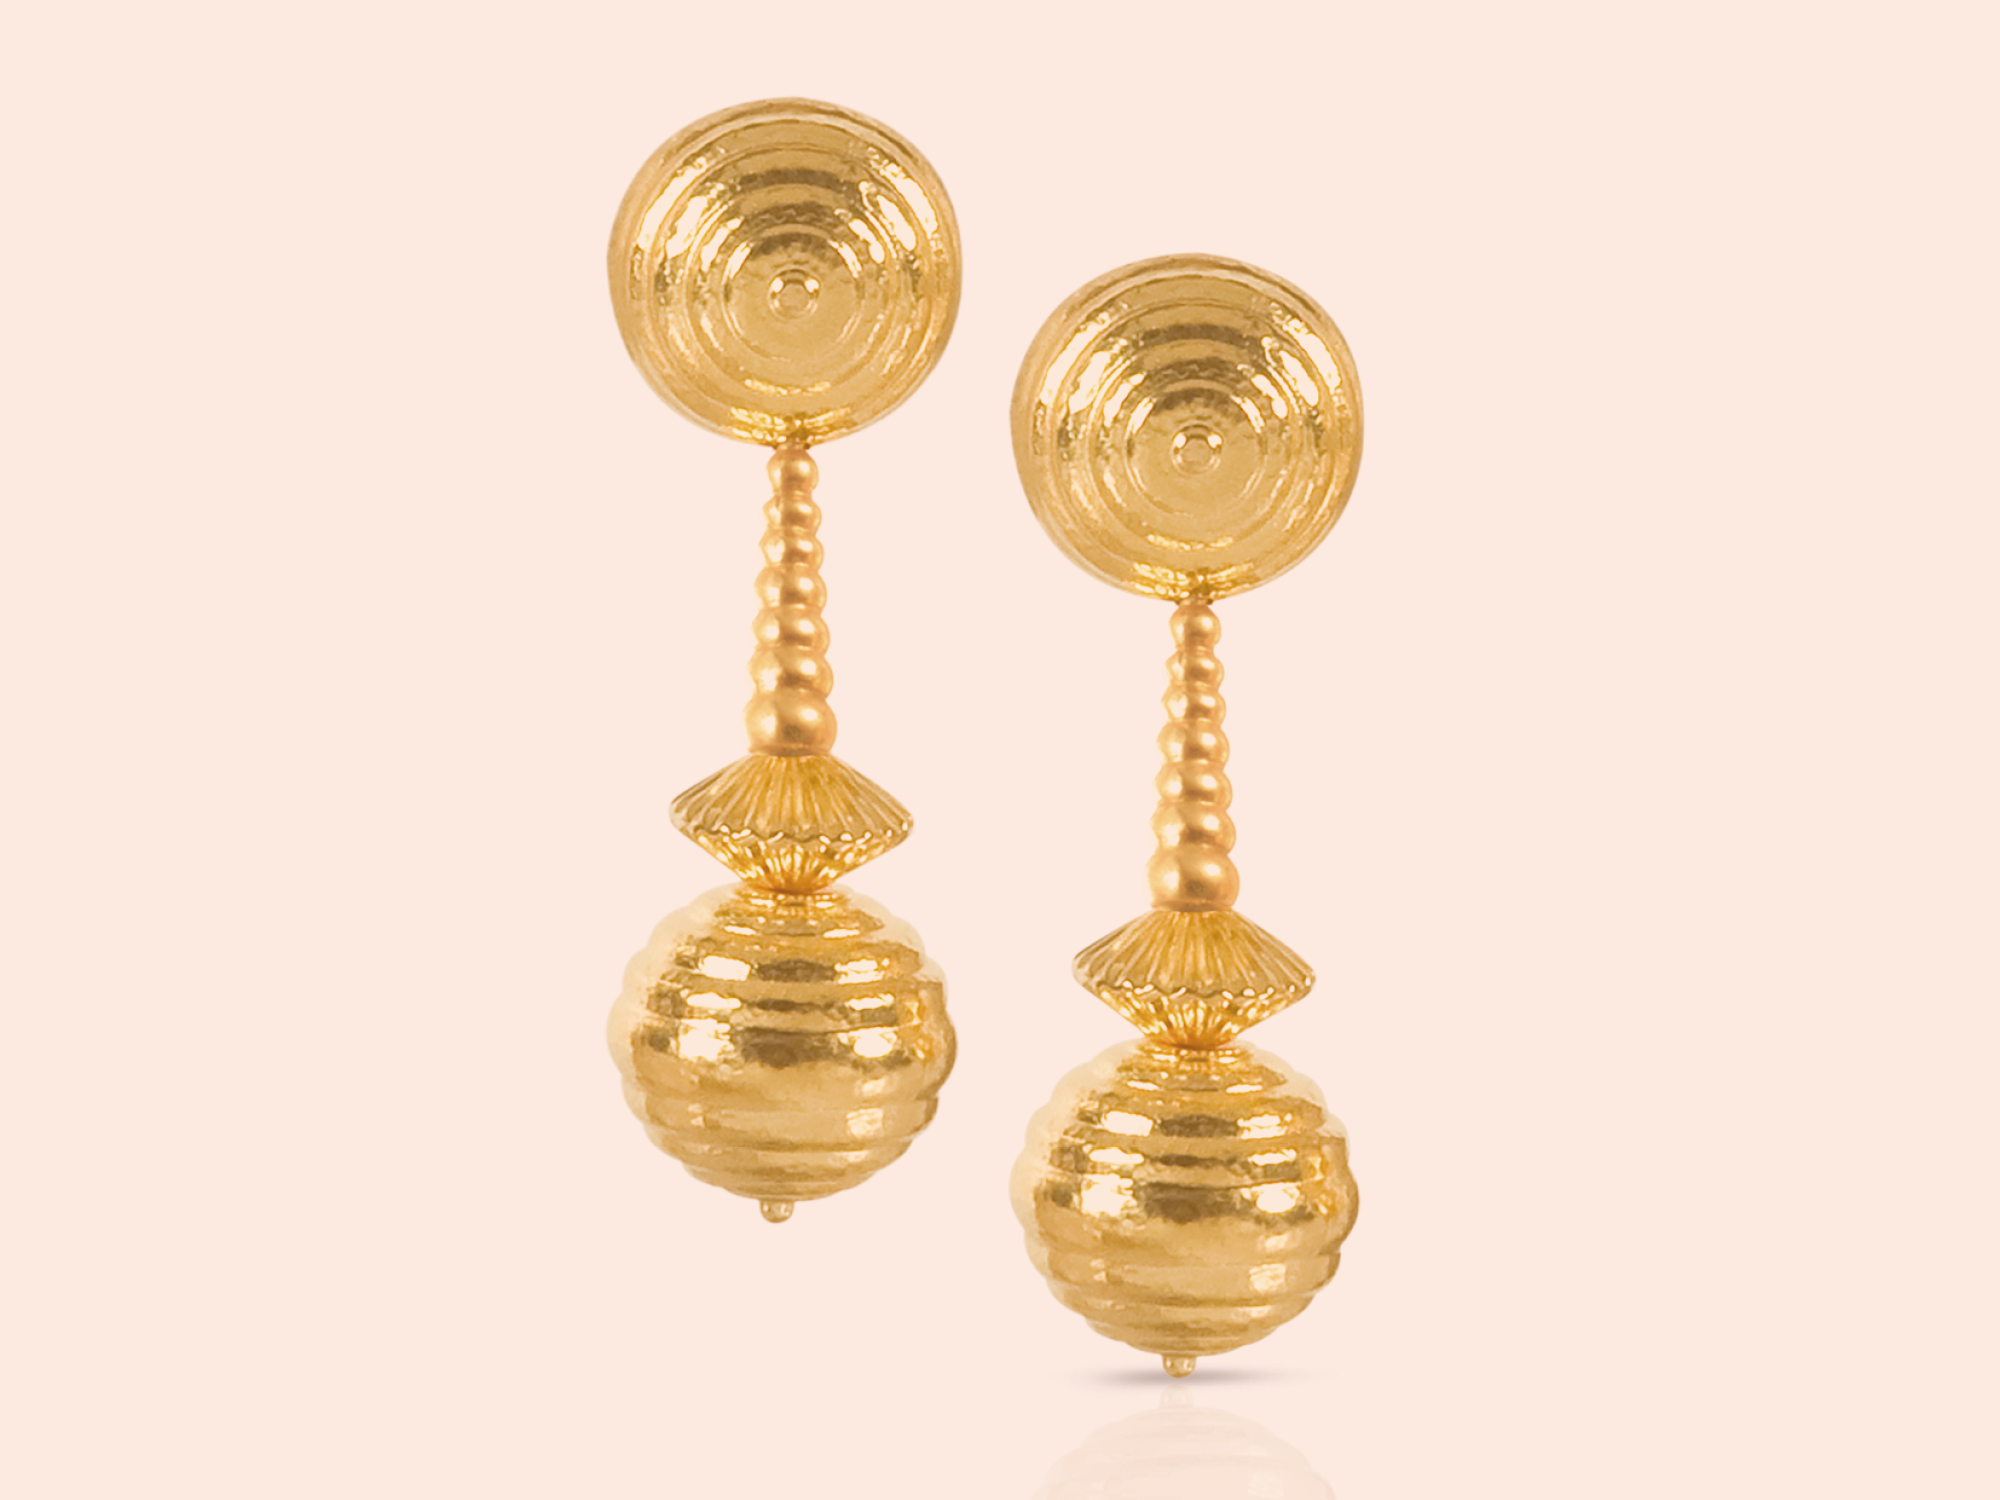 22k gold earrings from the Lalaounis Neolithic collection